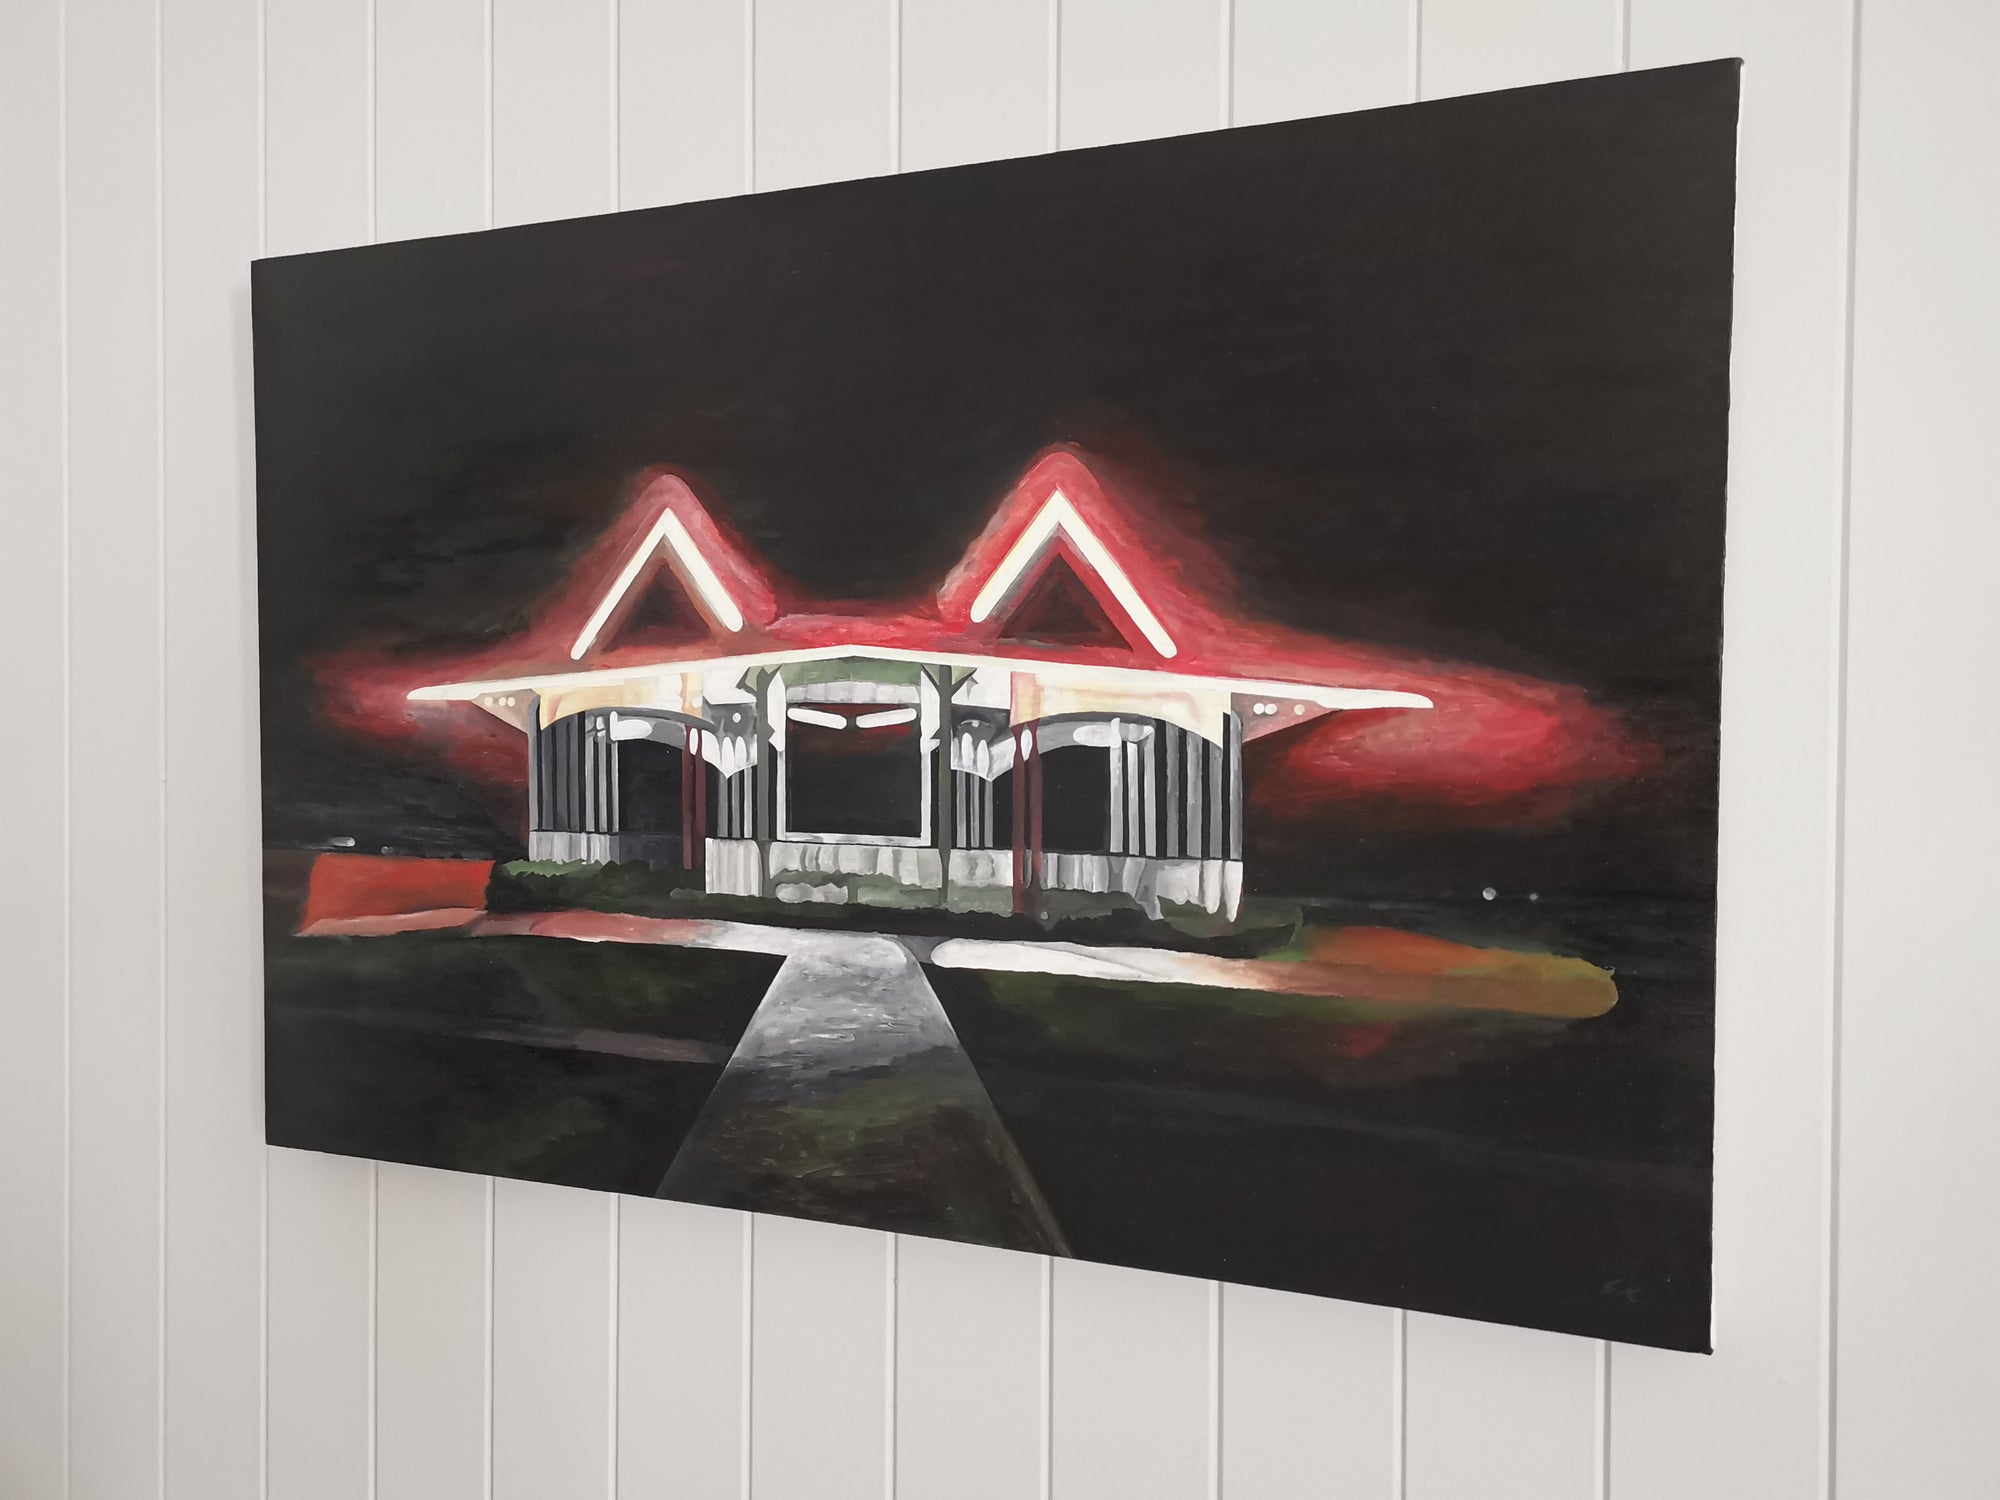 Buy unique artwork from Samir Hamaiel - affordable original artworks from emergingartists. Framed and unframed paintings, prints and art objects. In situ view